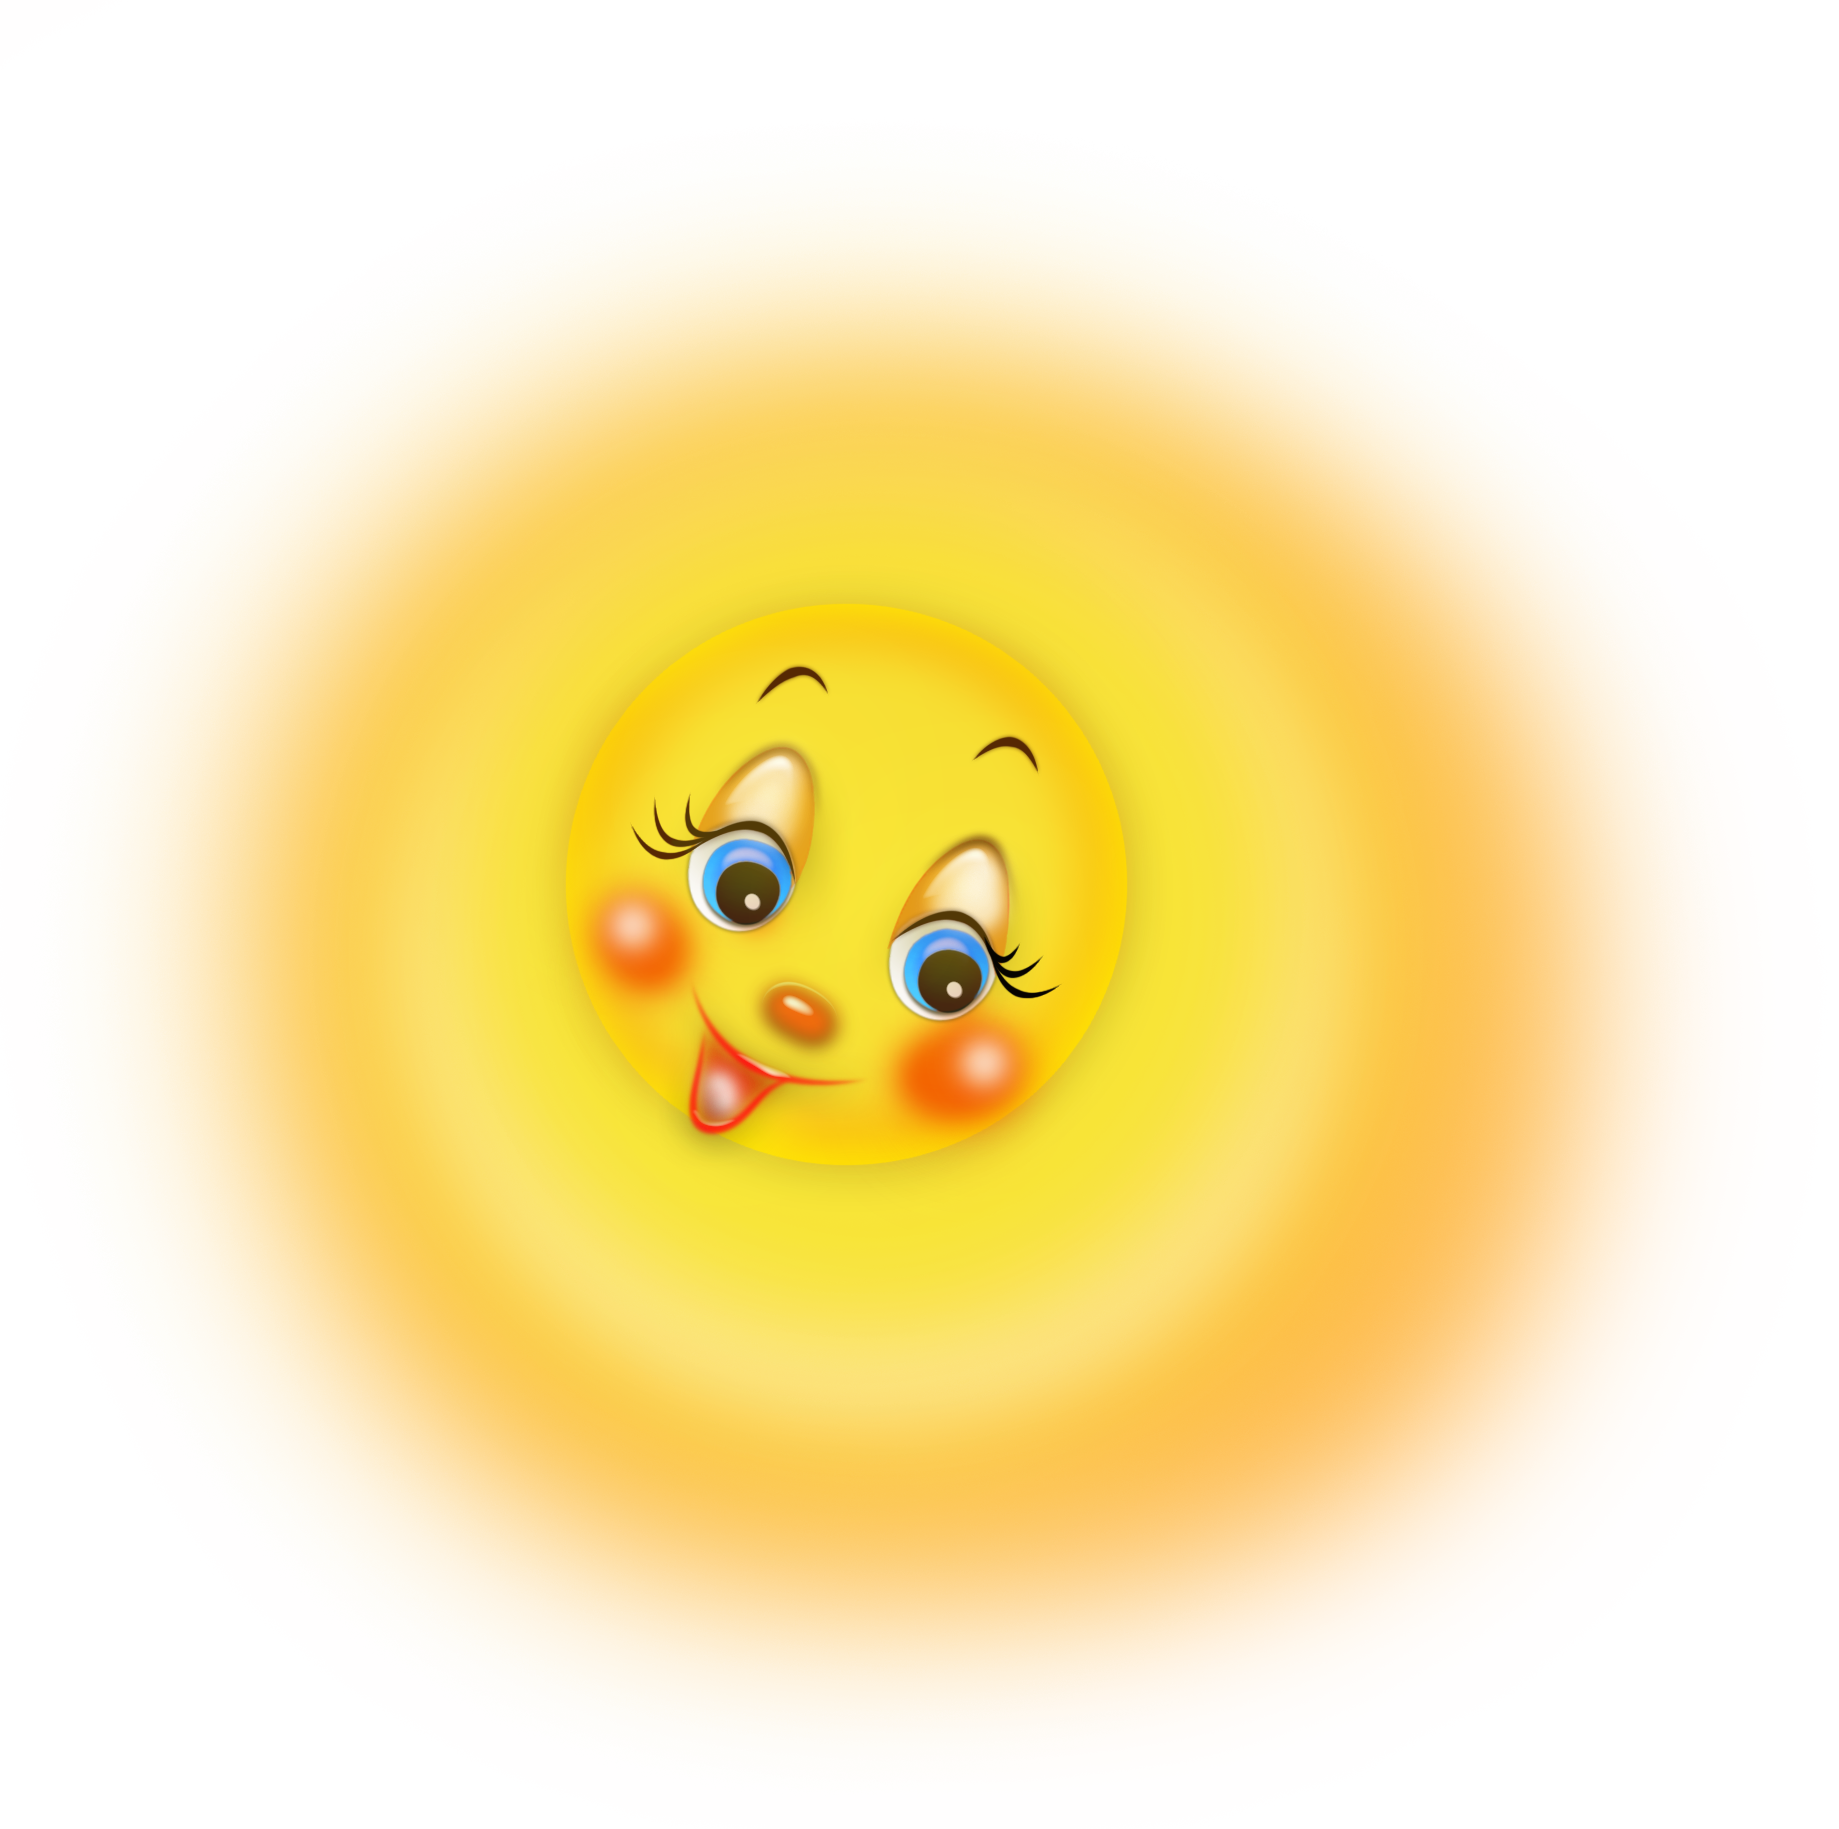 Earth and the sun clipart image royalty free download Transparent Cartoon Cute Sun PNG Clipart Picture | Gallery ... image royalty free download